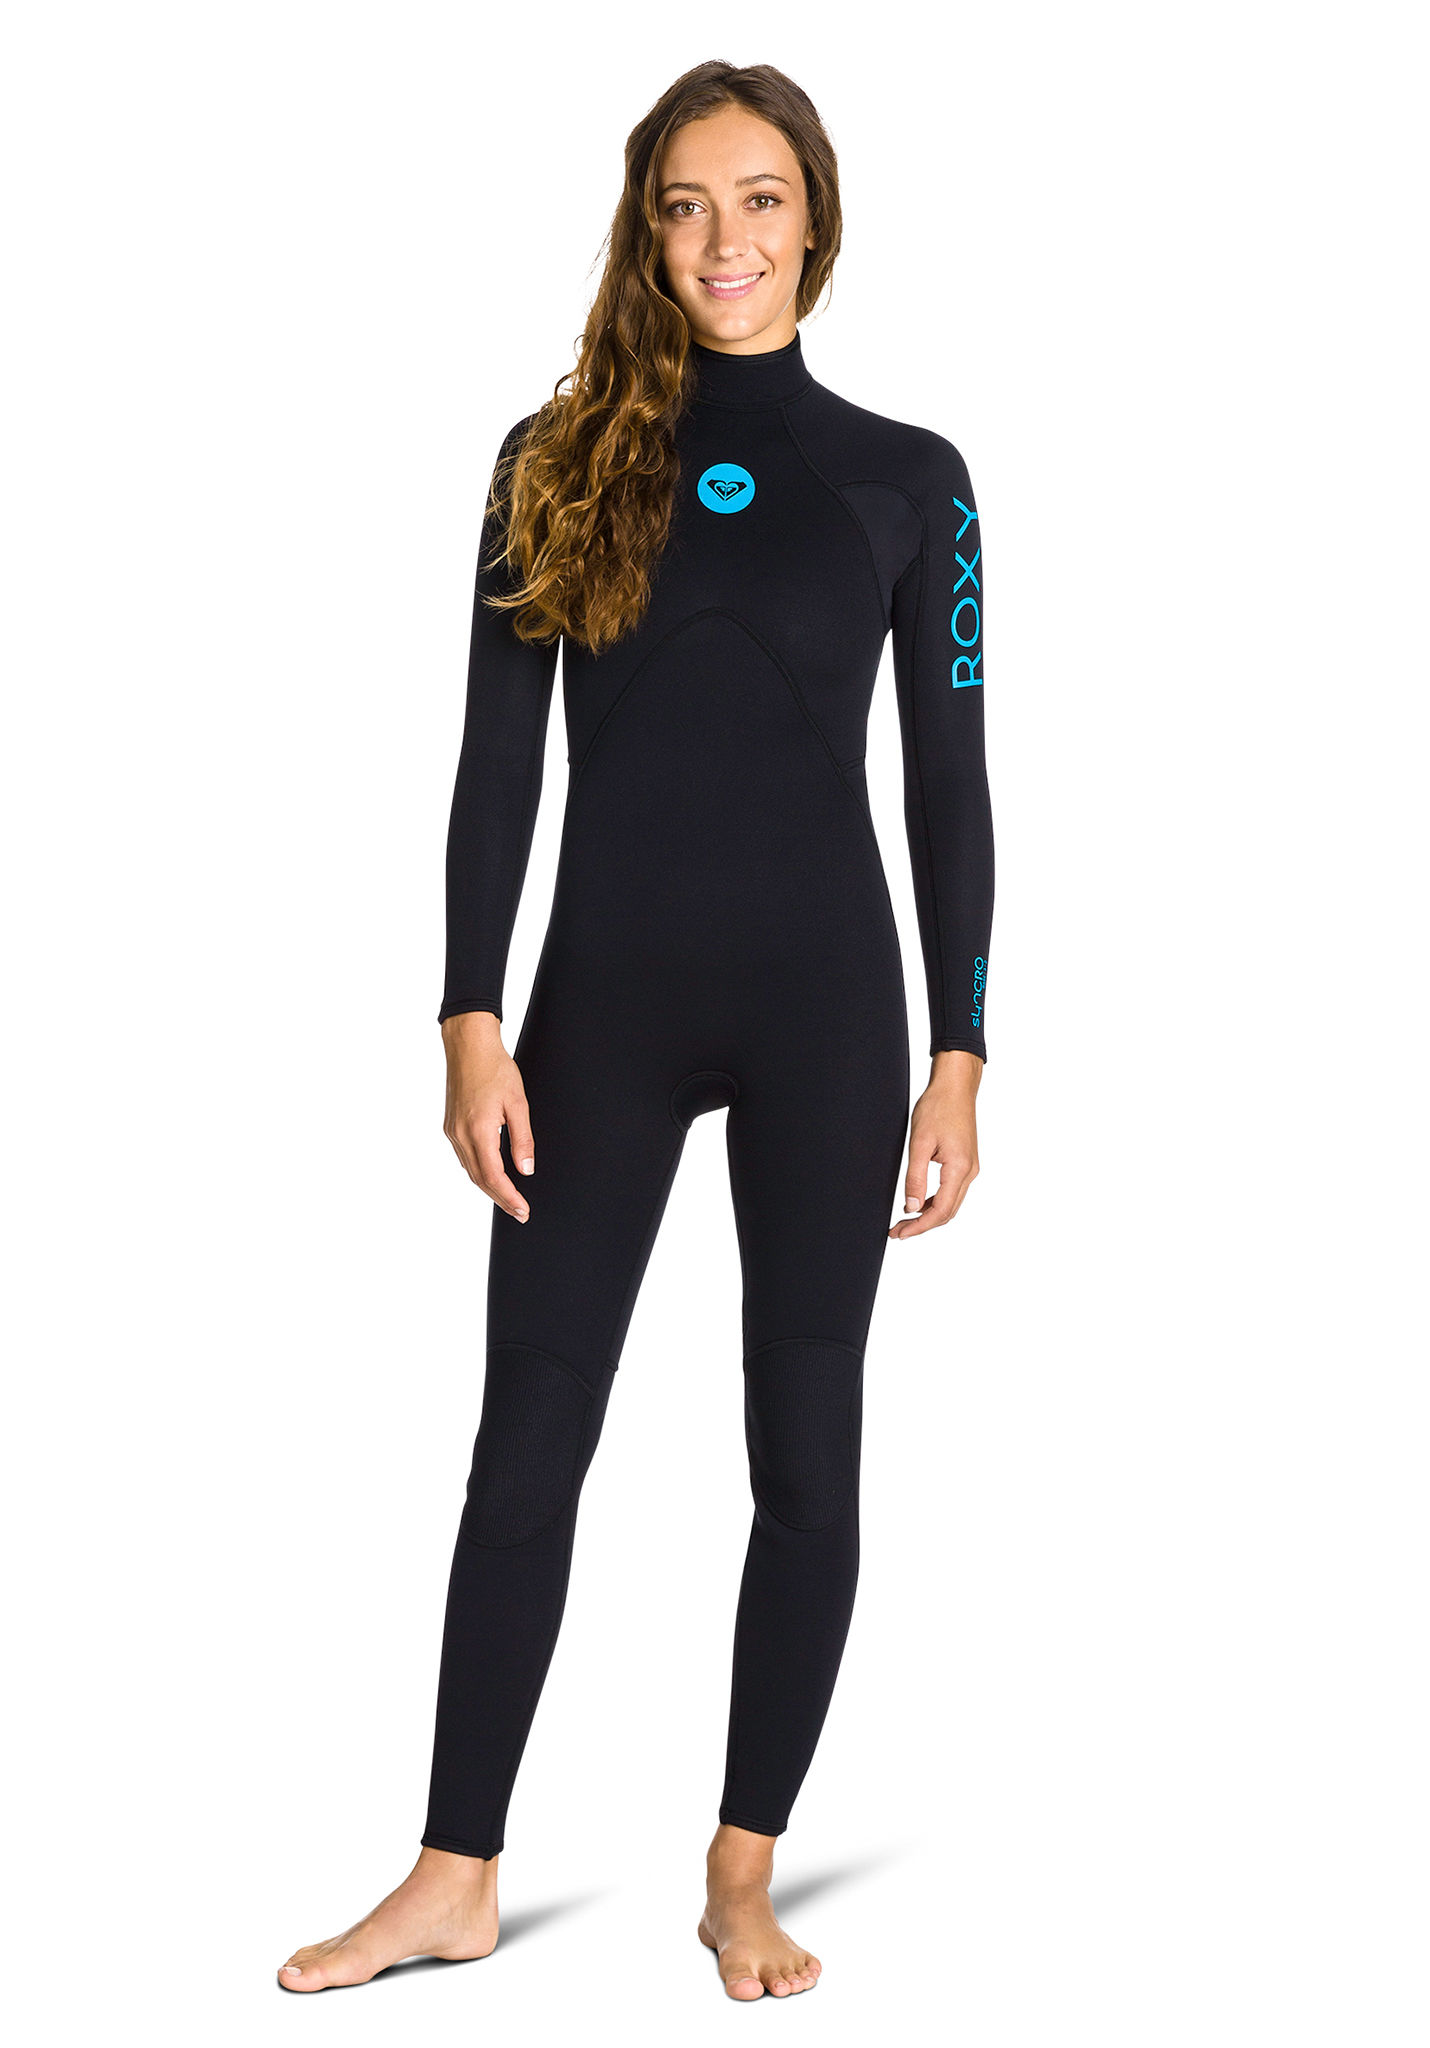 6005afb314 Roxy Syncro Base 5/4/3mm Back Zip - Wetsuit for Women - Black